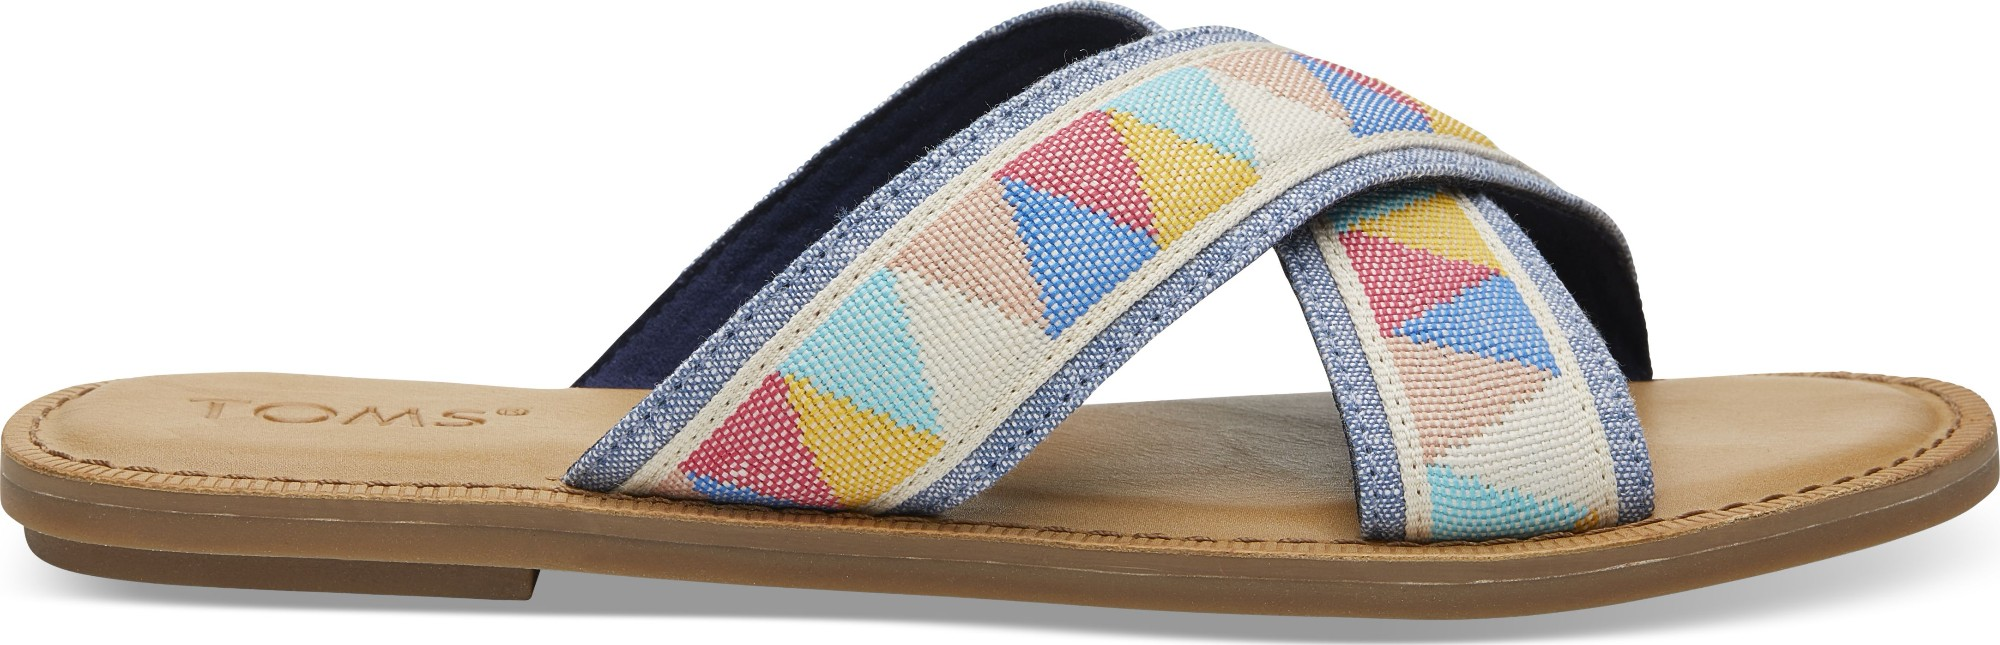 TOMS Tribal Women's Viv Sandal Multi 36,5